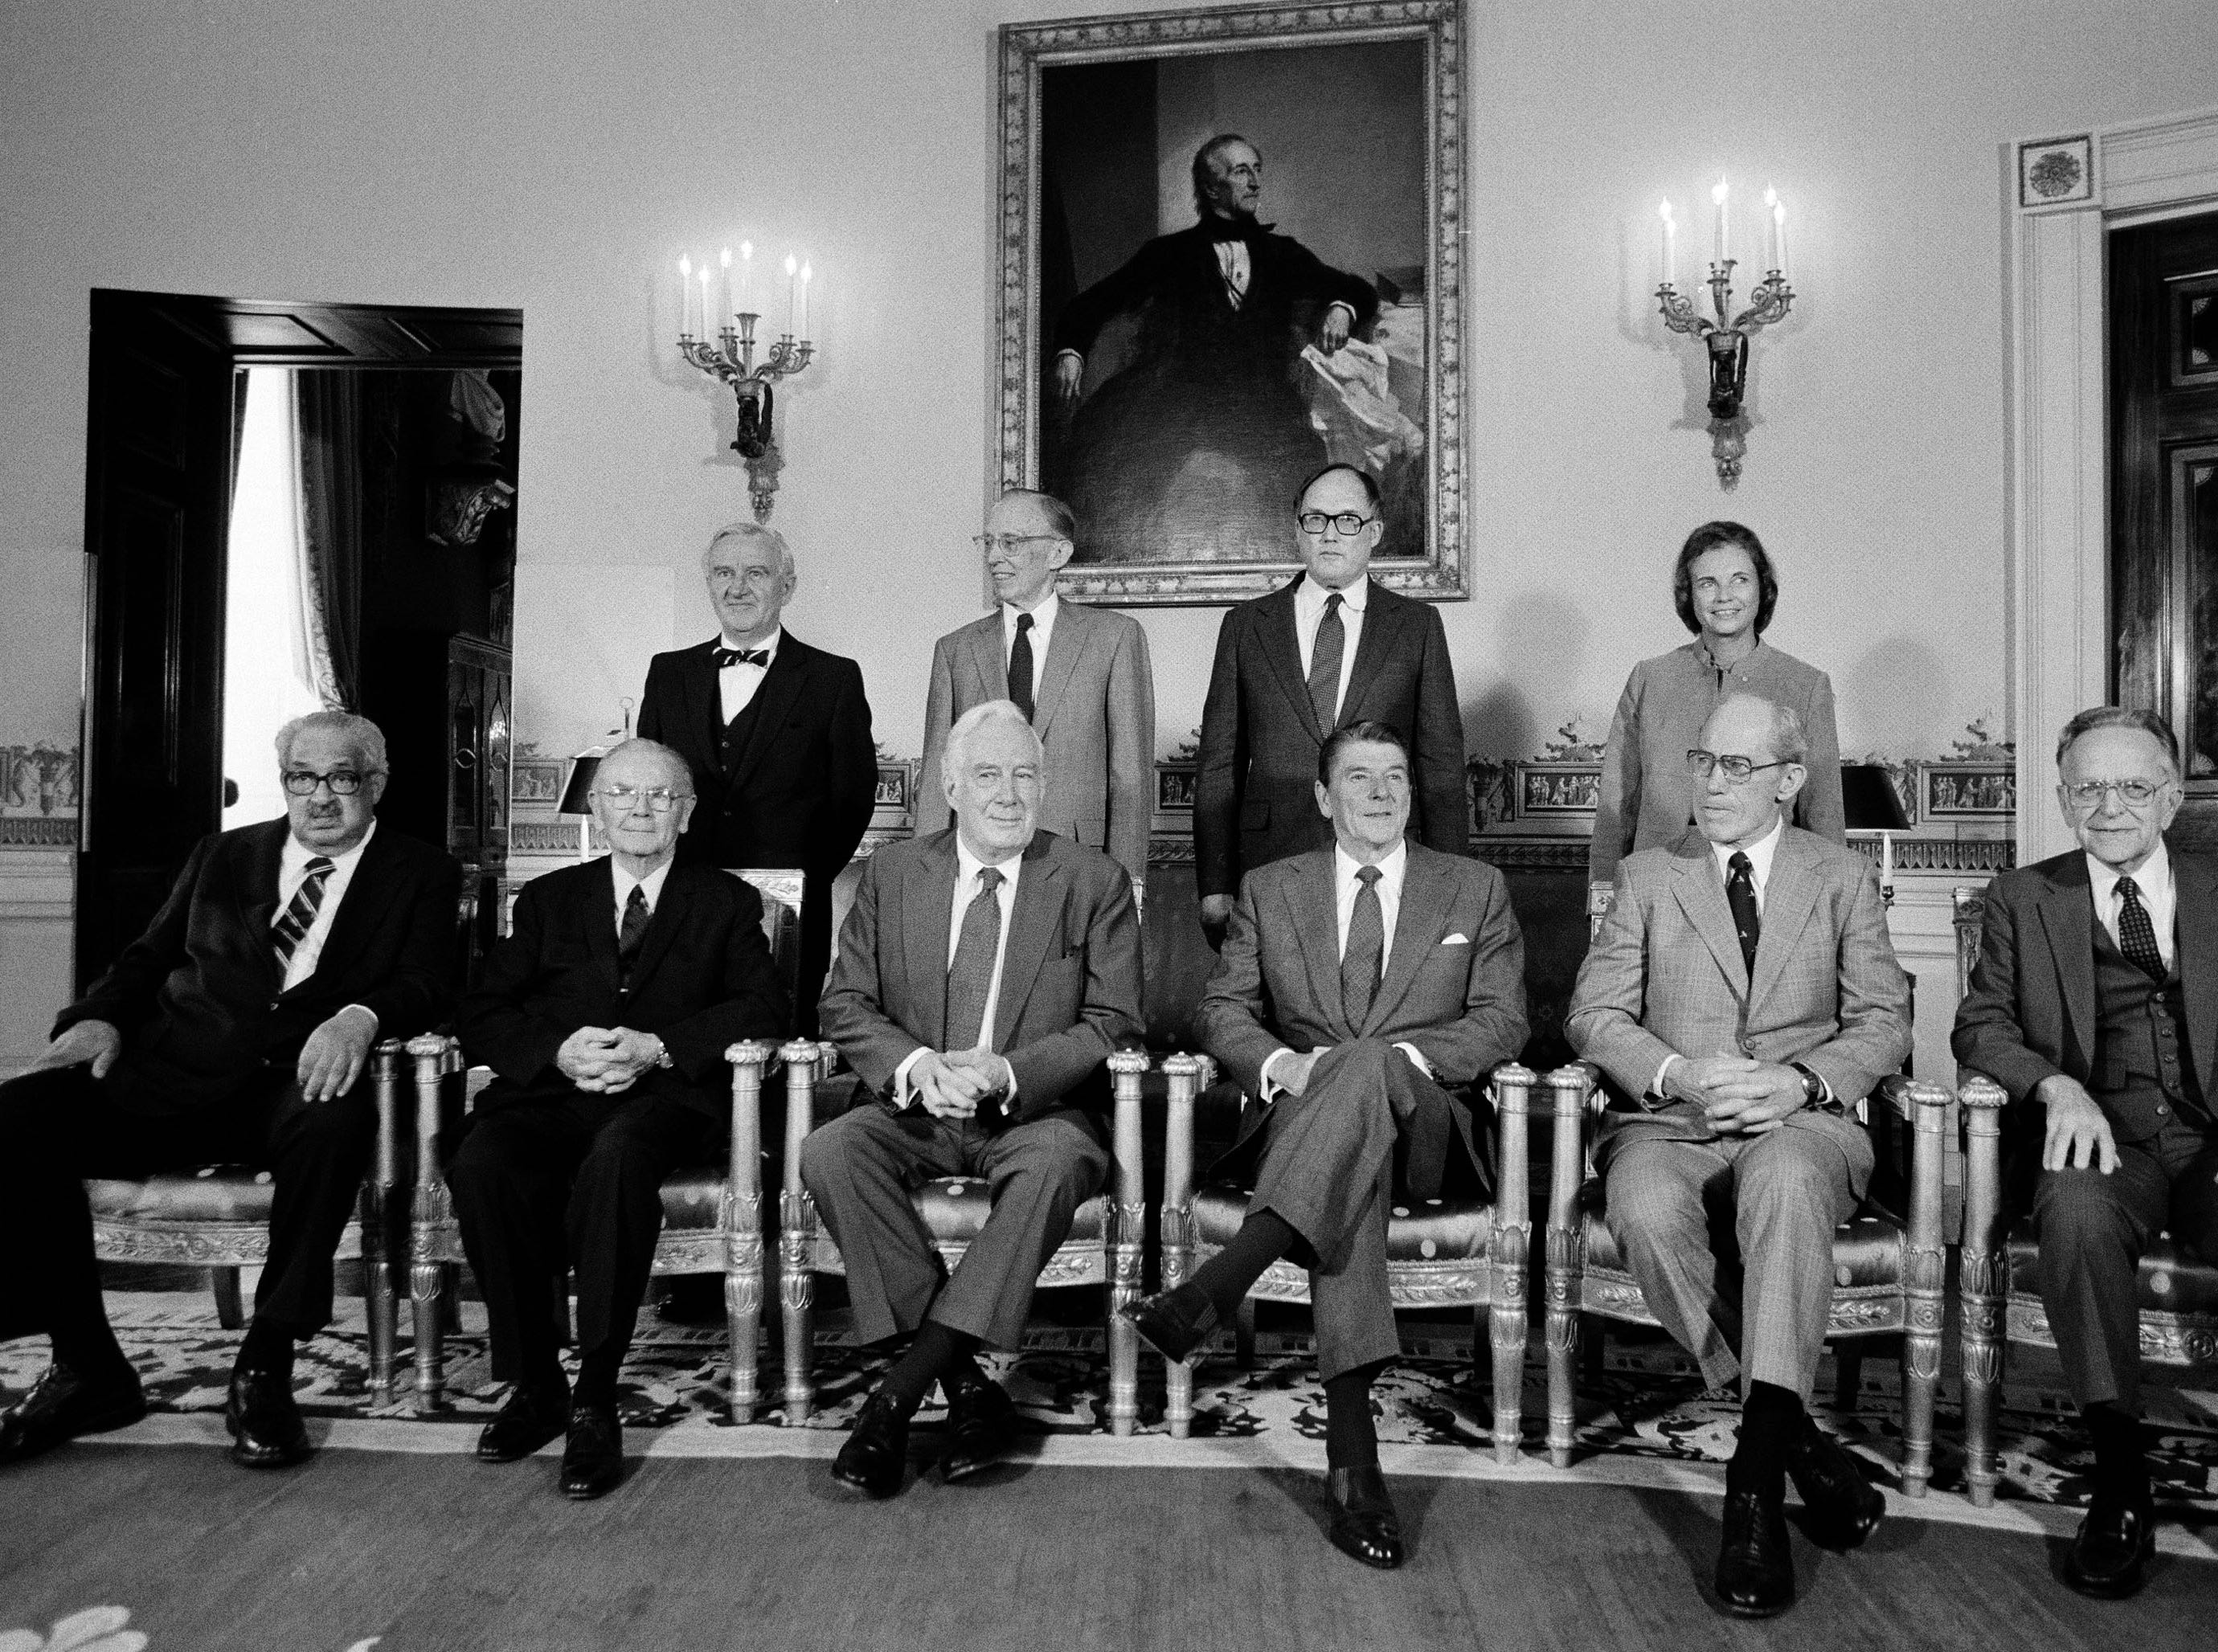 President Reagan poses with the nine members of the Supreme Court in the Blue Room of the White House, Oct. 1, 1982.  Back row from left:  Justice John Paul Stevens; Justice Lewis Powell; Justice William Rehnquist; and Justice Sandra Day O'Connor, Reagan's sole appointment to the high court.  Front row, left to right:  Justice Thurgood Marshall; Justice William Brennan Jr.; Chief Justice Warren Burger; President Reagan; Justice Byron White; and Justice Harry Blackmun.